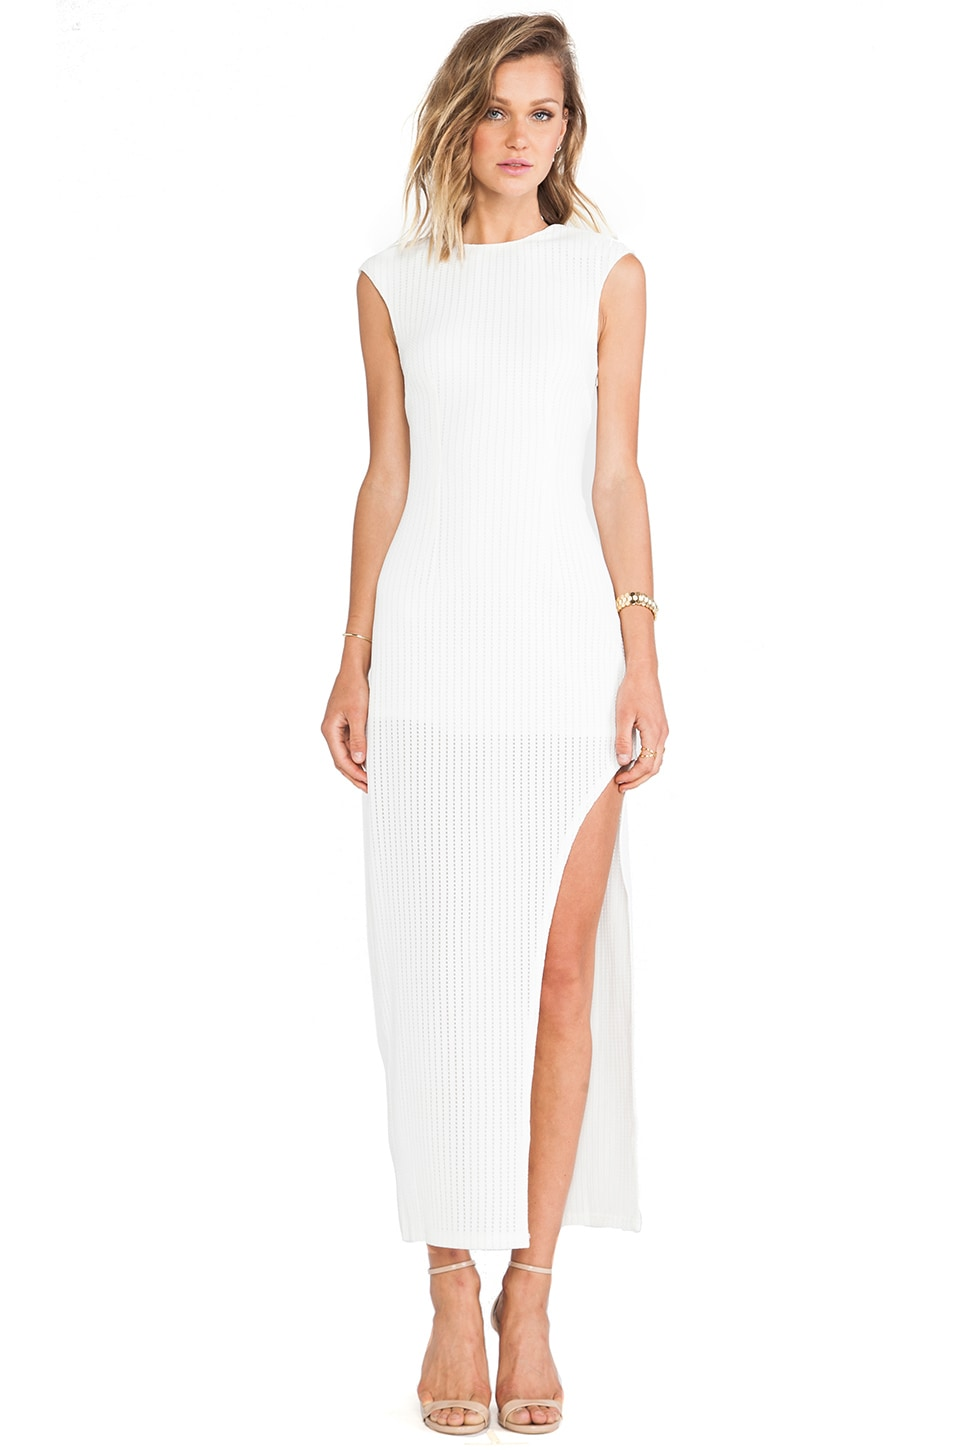 Lumier Web of Life Maxi in White